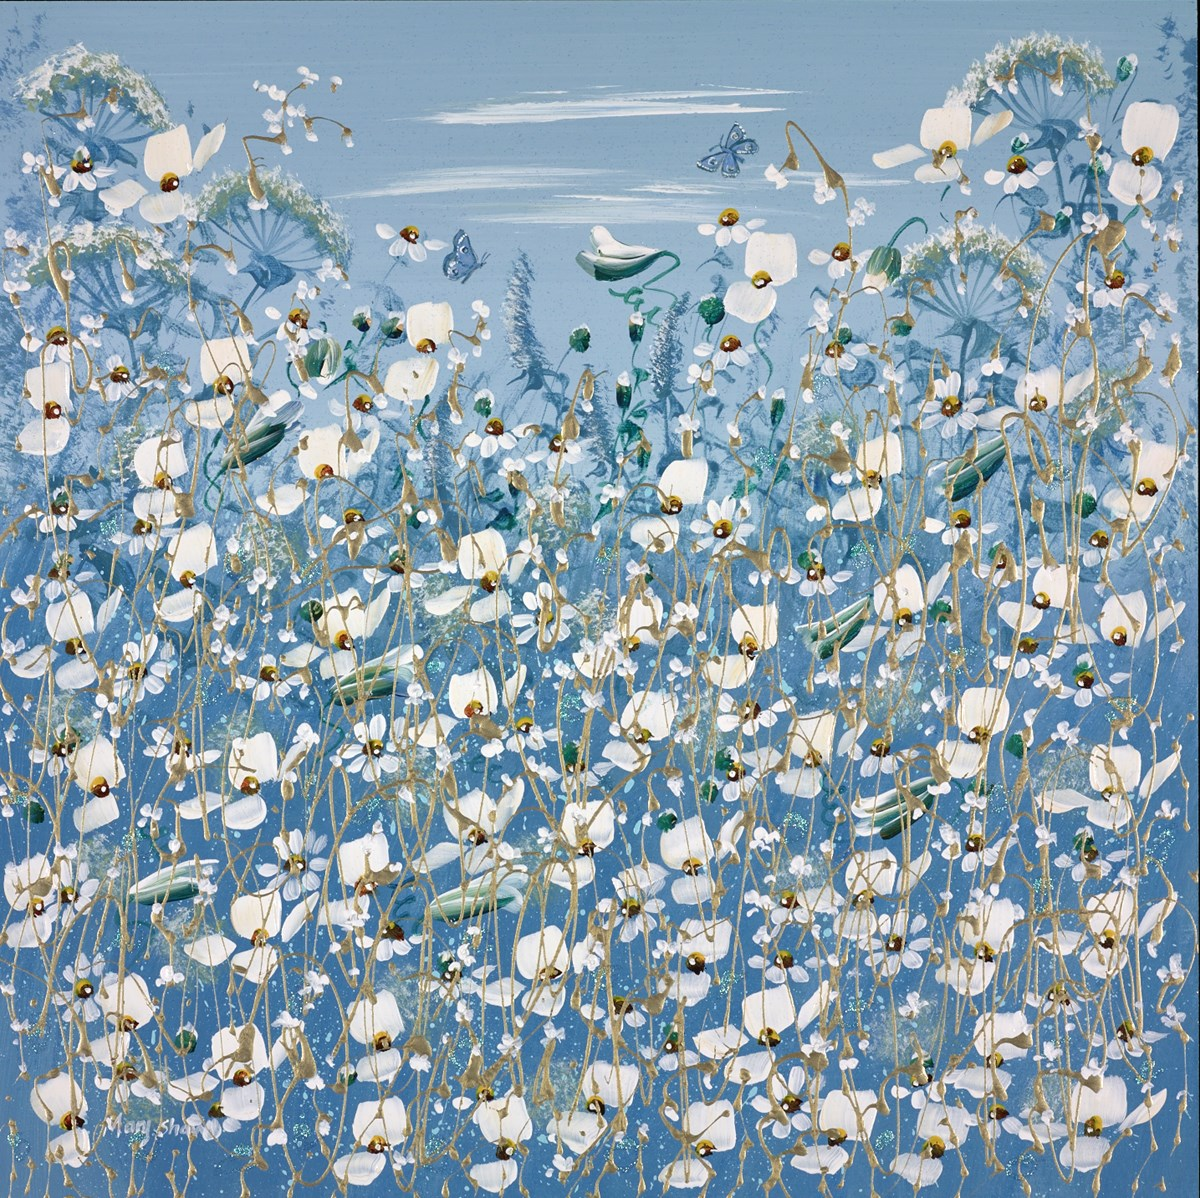 Butterflies in Blue I by mary shaw -  sized 18x18 inches. Available from Whitewall Galleries